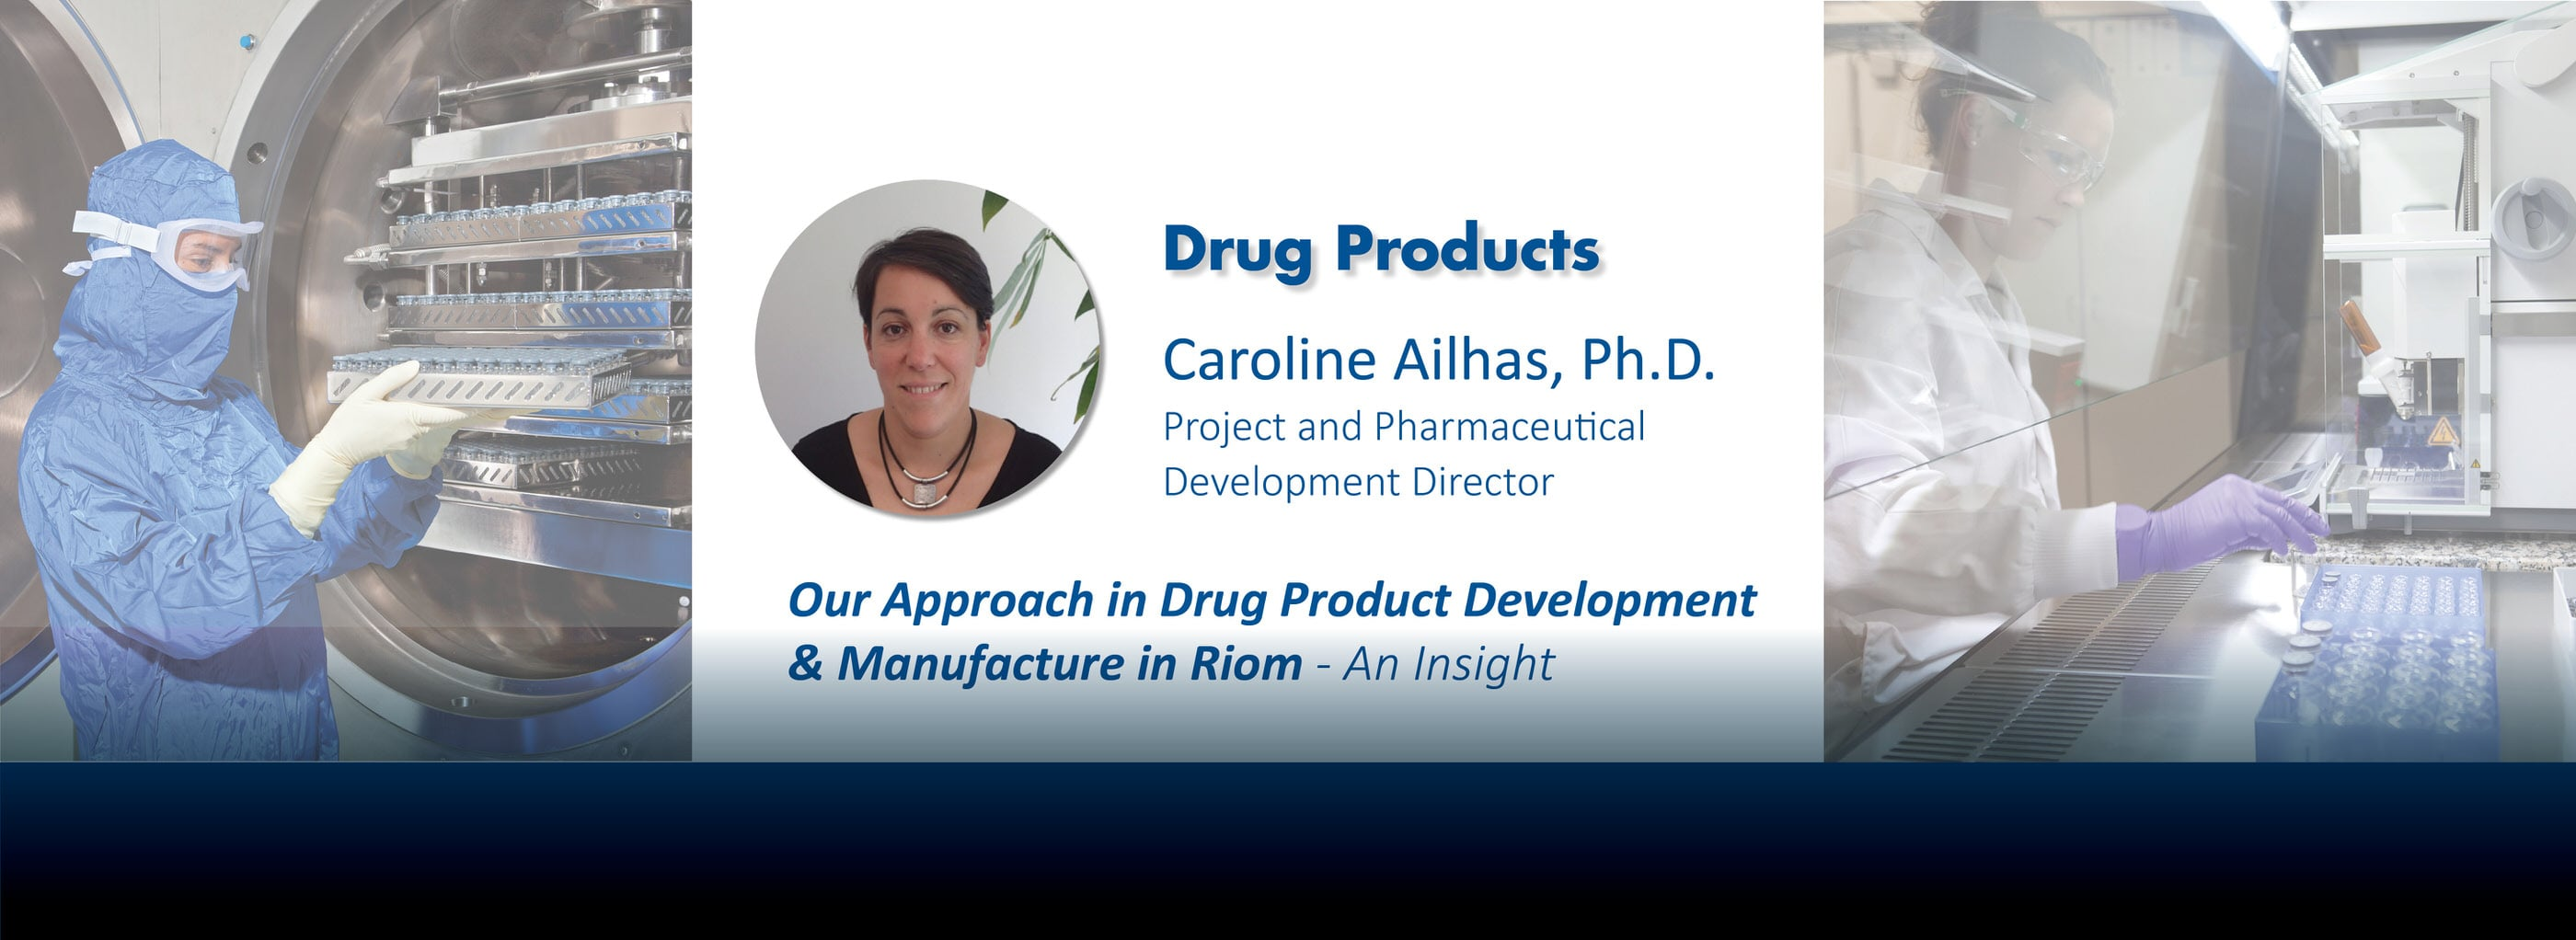 Riom_Drug_Products_Article